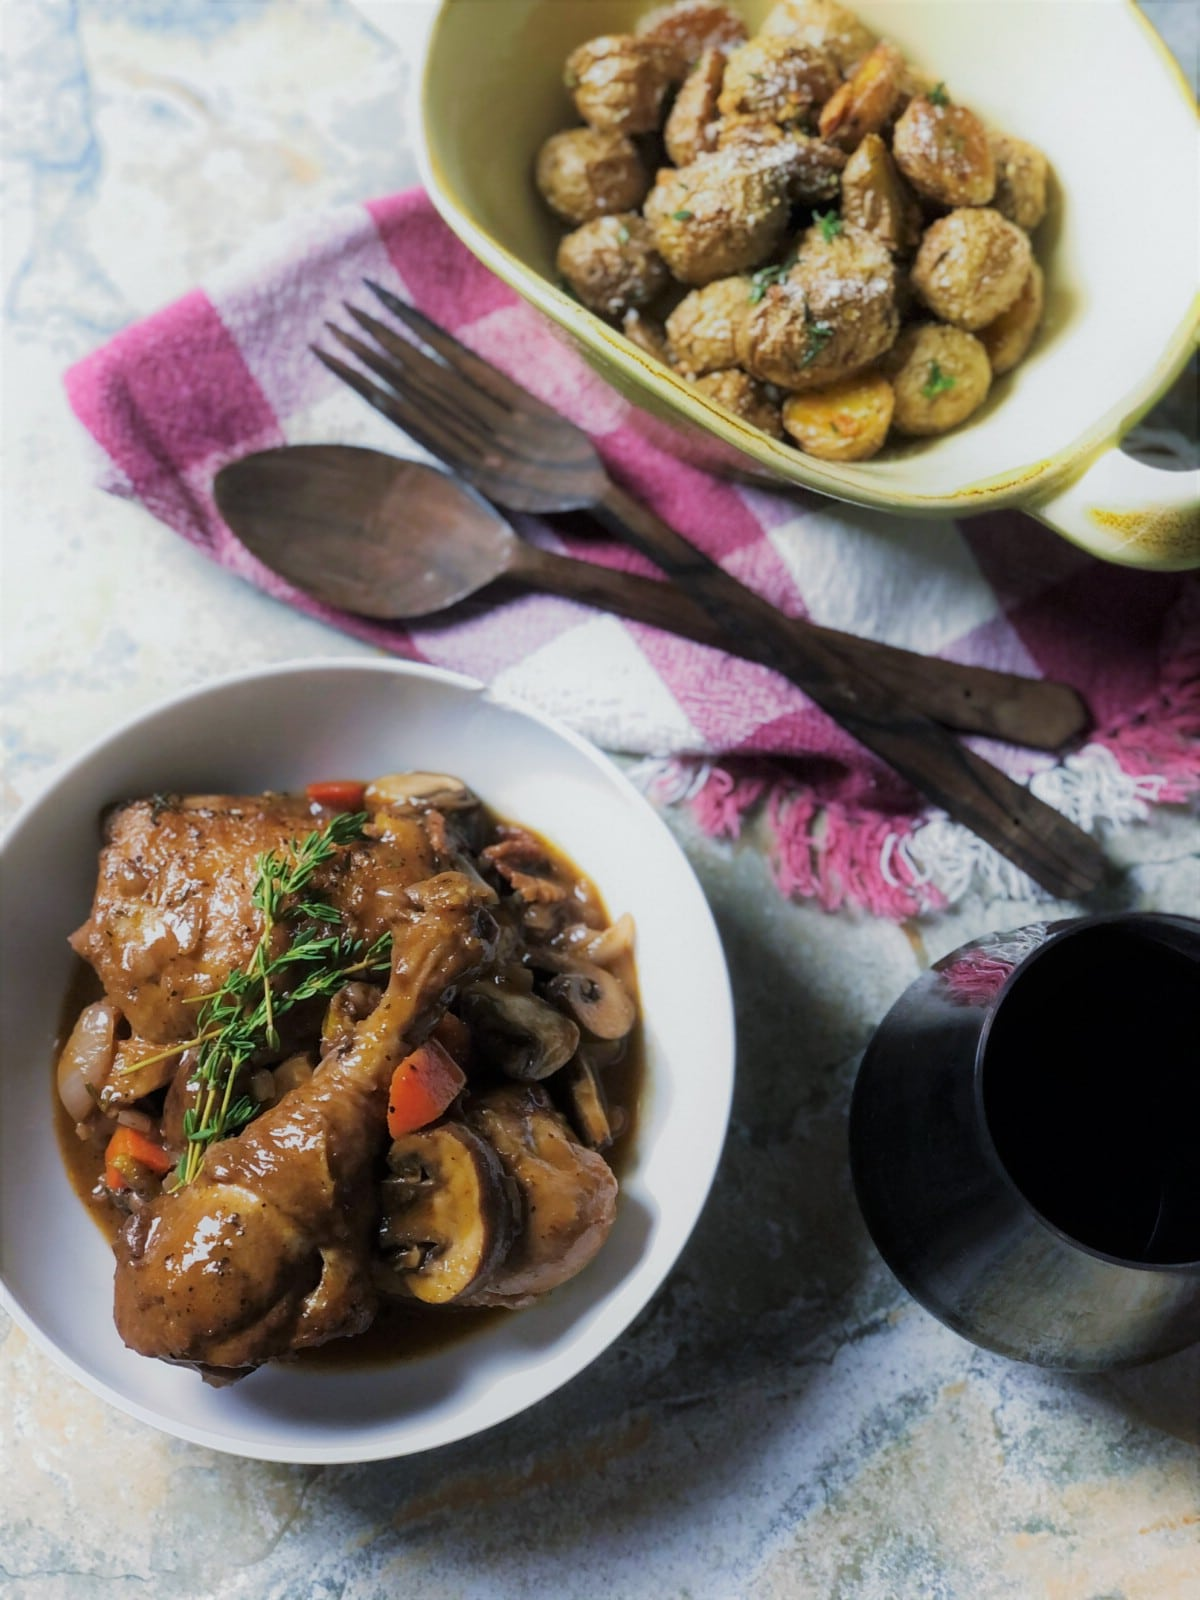 Coq au vin in white bowl next to roasted potato